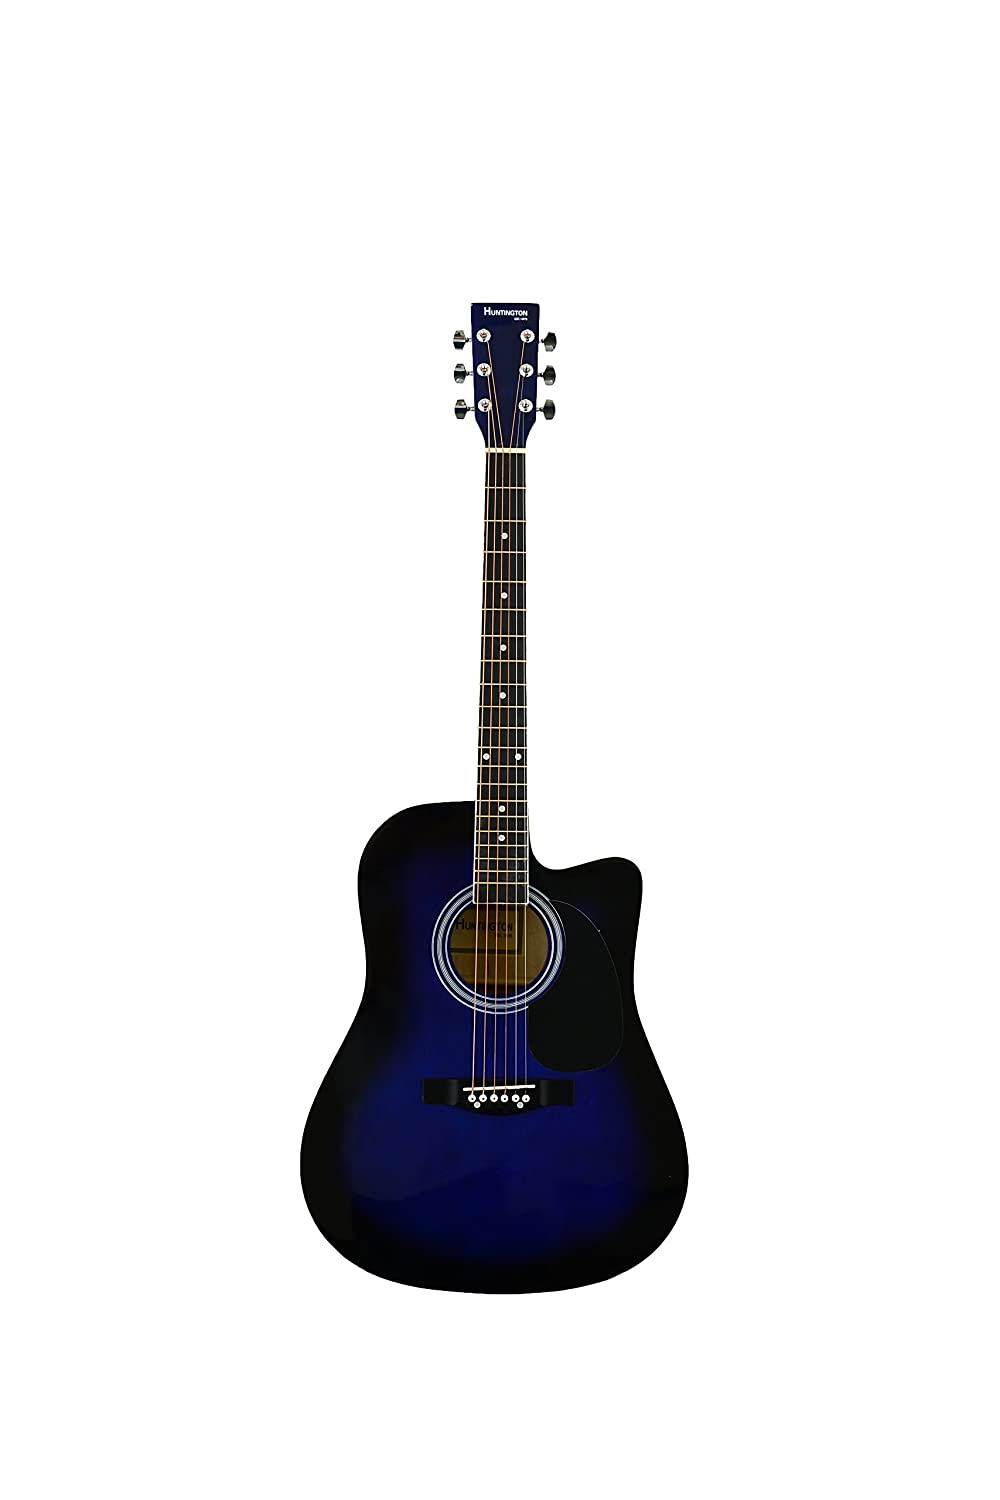 Huntington GA41C-NT 41-Inch Acoustic Cutaway Guitar, Natural